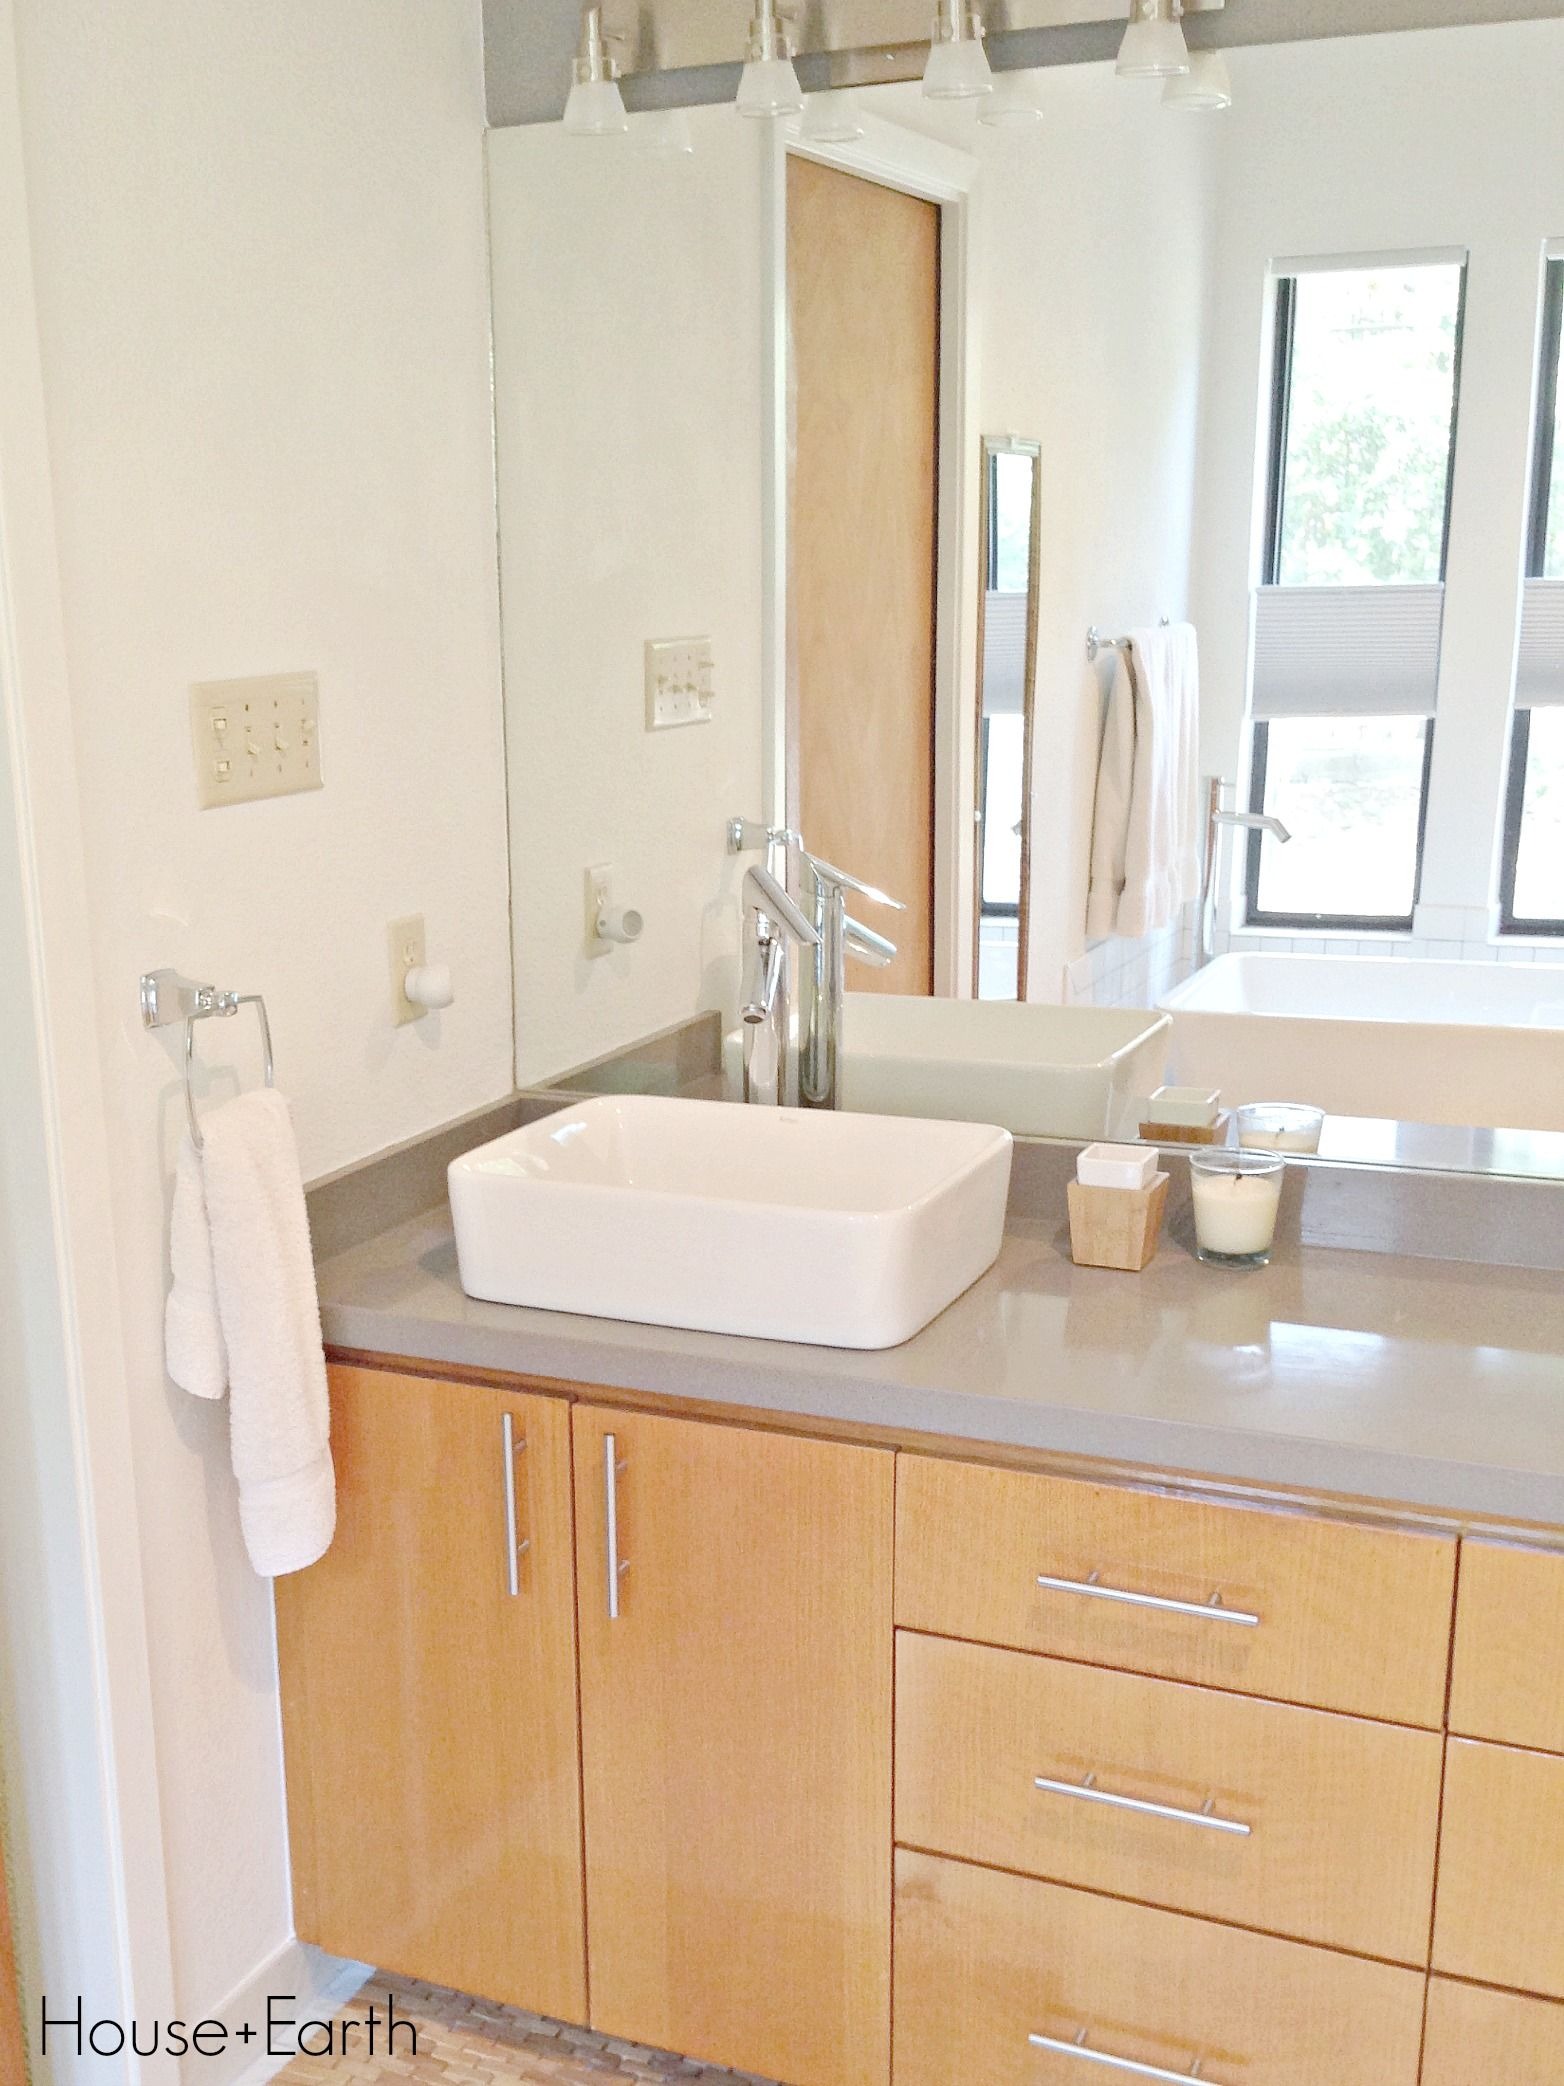 Bathroom Renovation Silestone Grey Expo Counter Top White Vessel Sinks Stained Cabinetry